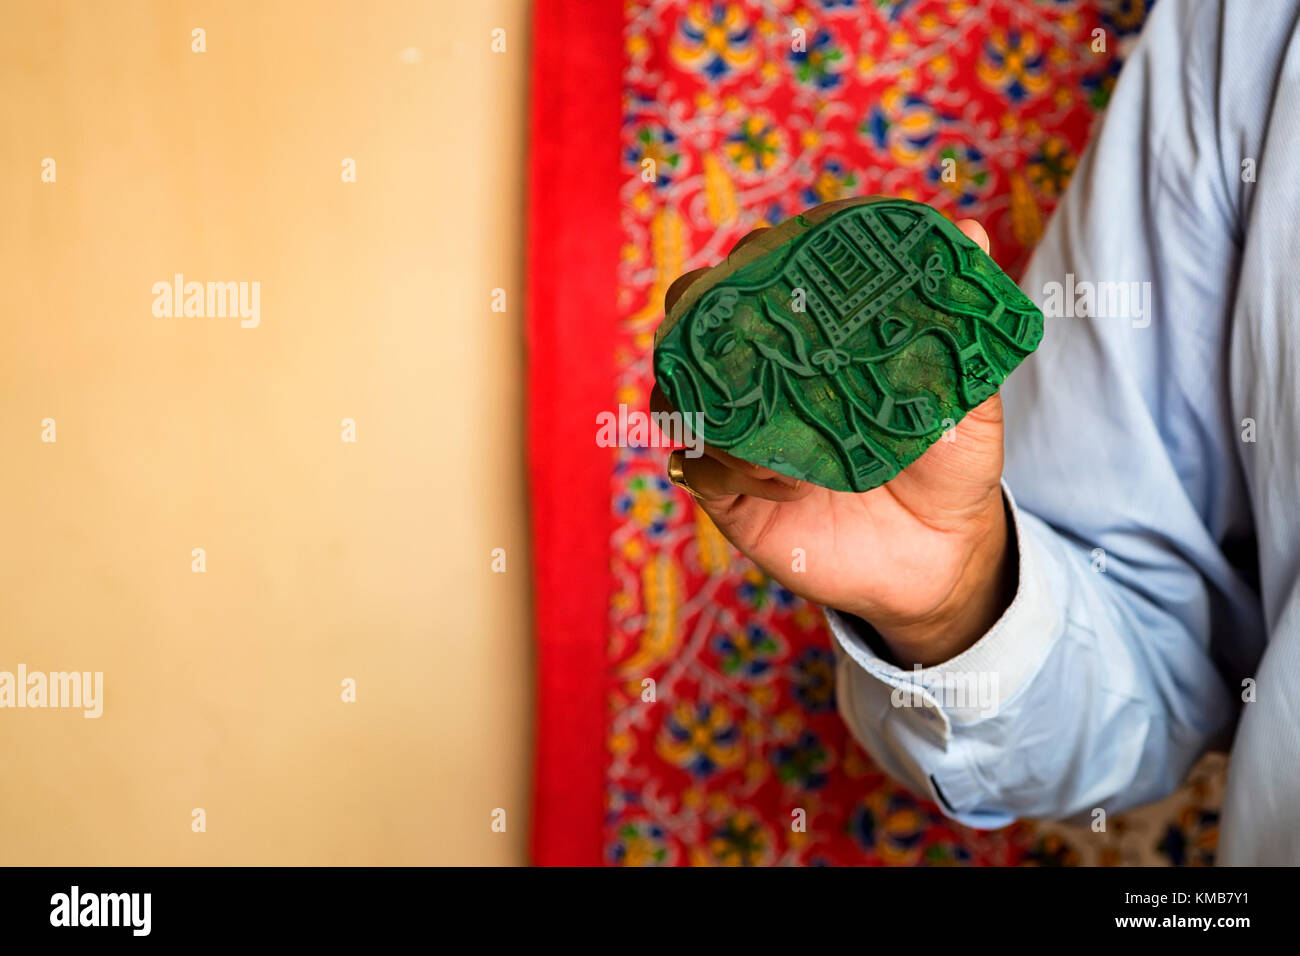 Hand holds stamp for dyeing cloth - Stock Image